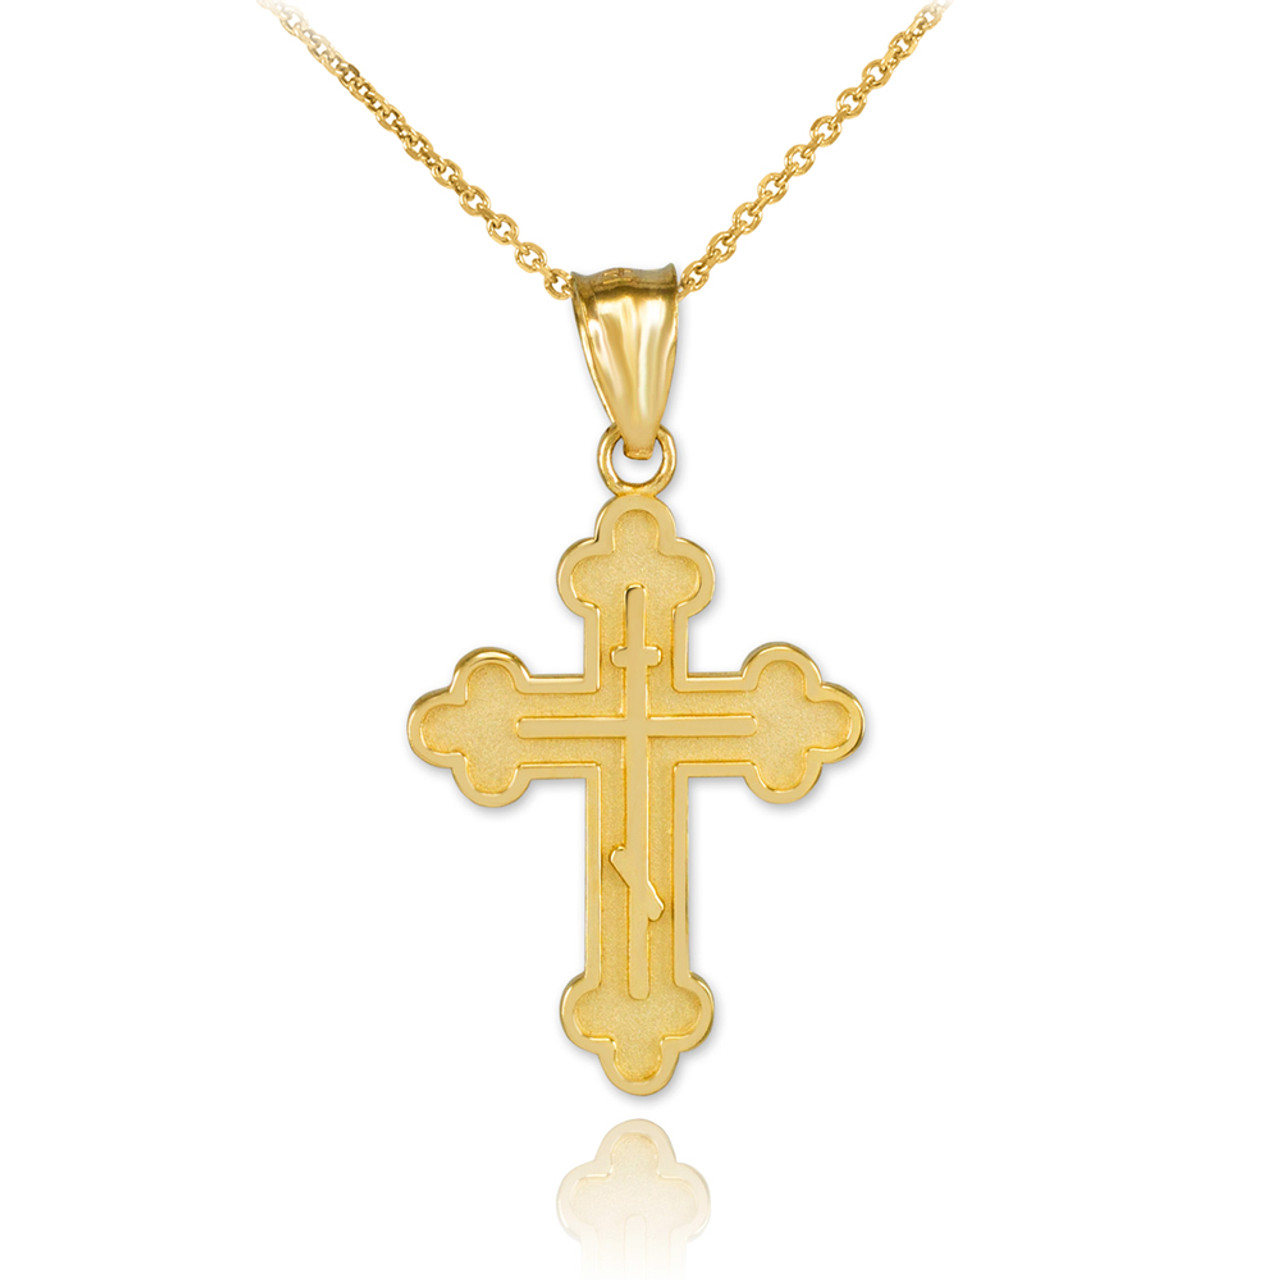 Solid gold eastern orthodox cross charm pendant solid gold eastern orthodox cross charm pendant necklace aloadofball Image collections